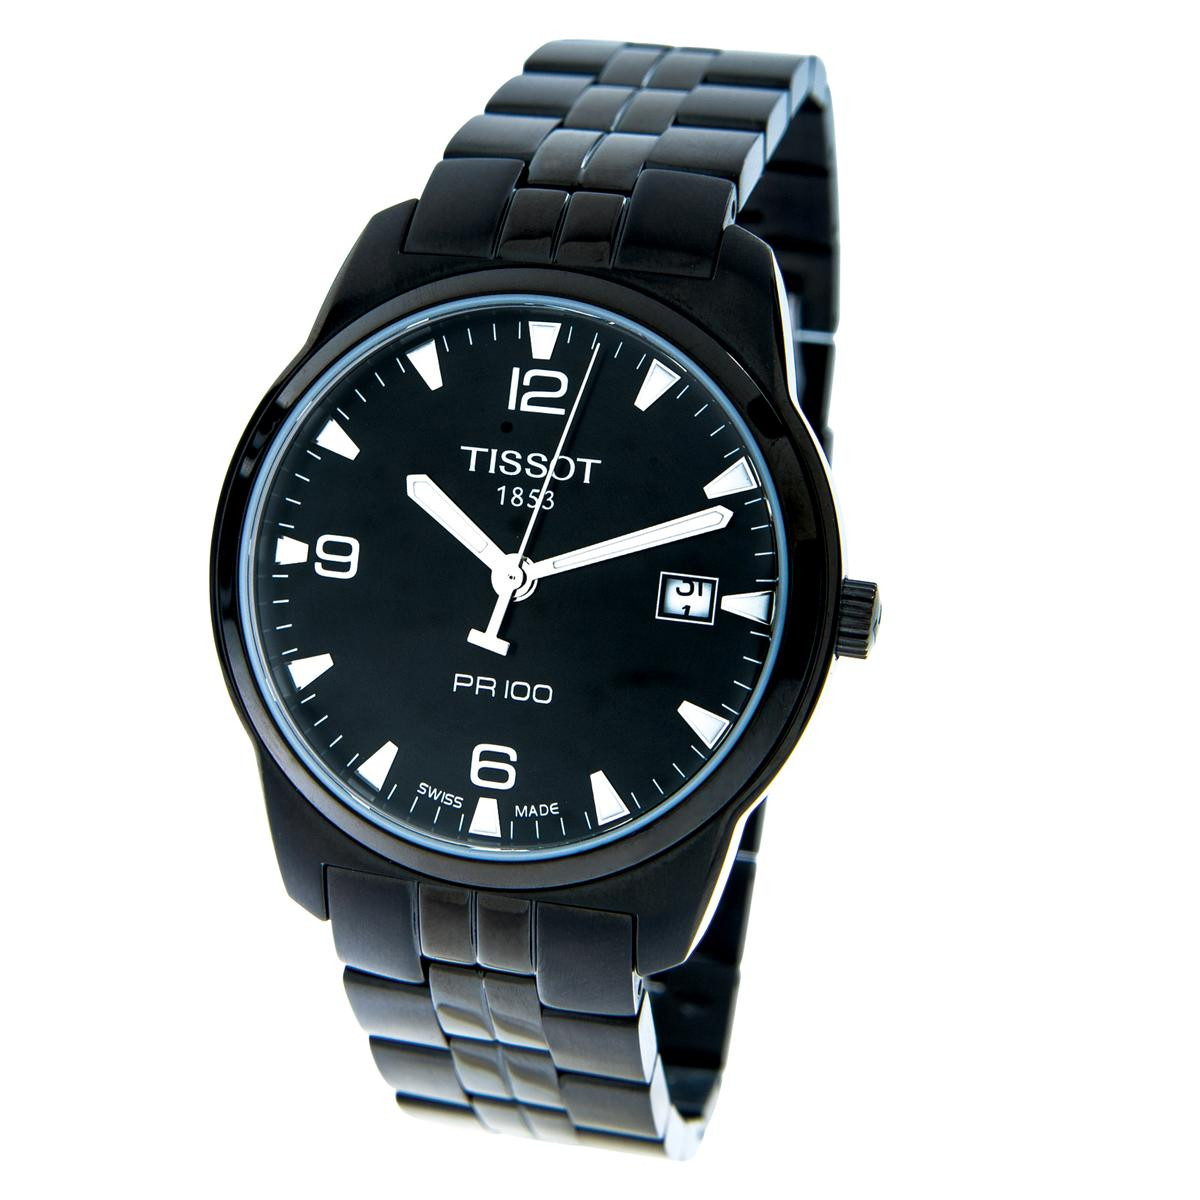 New Tissot PVD PR100 Watch